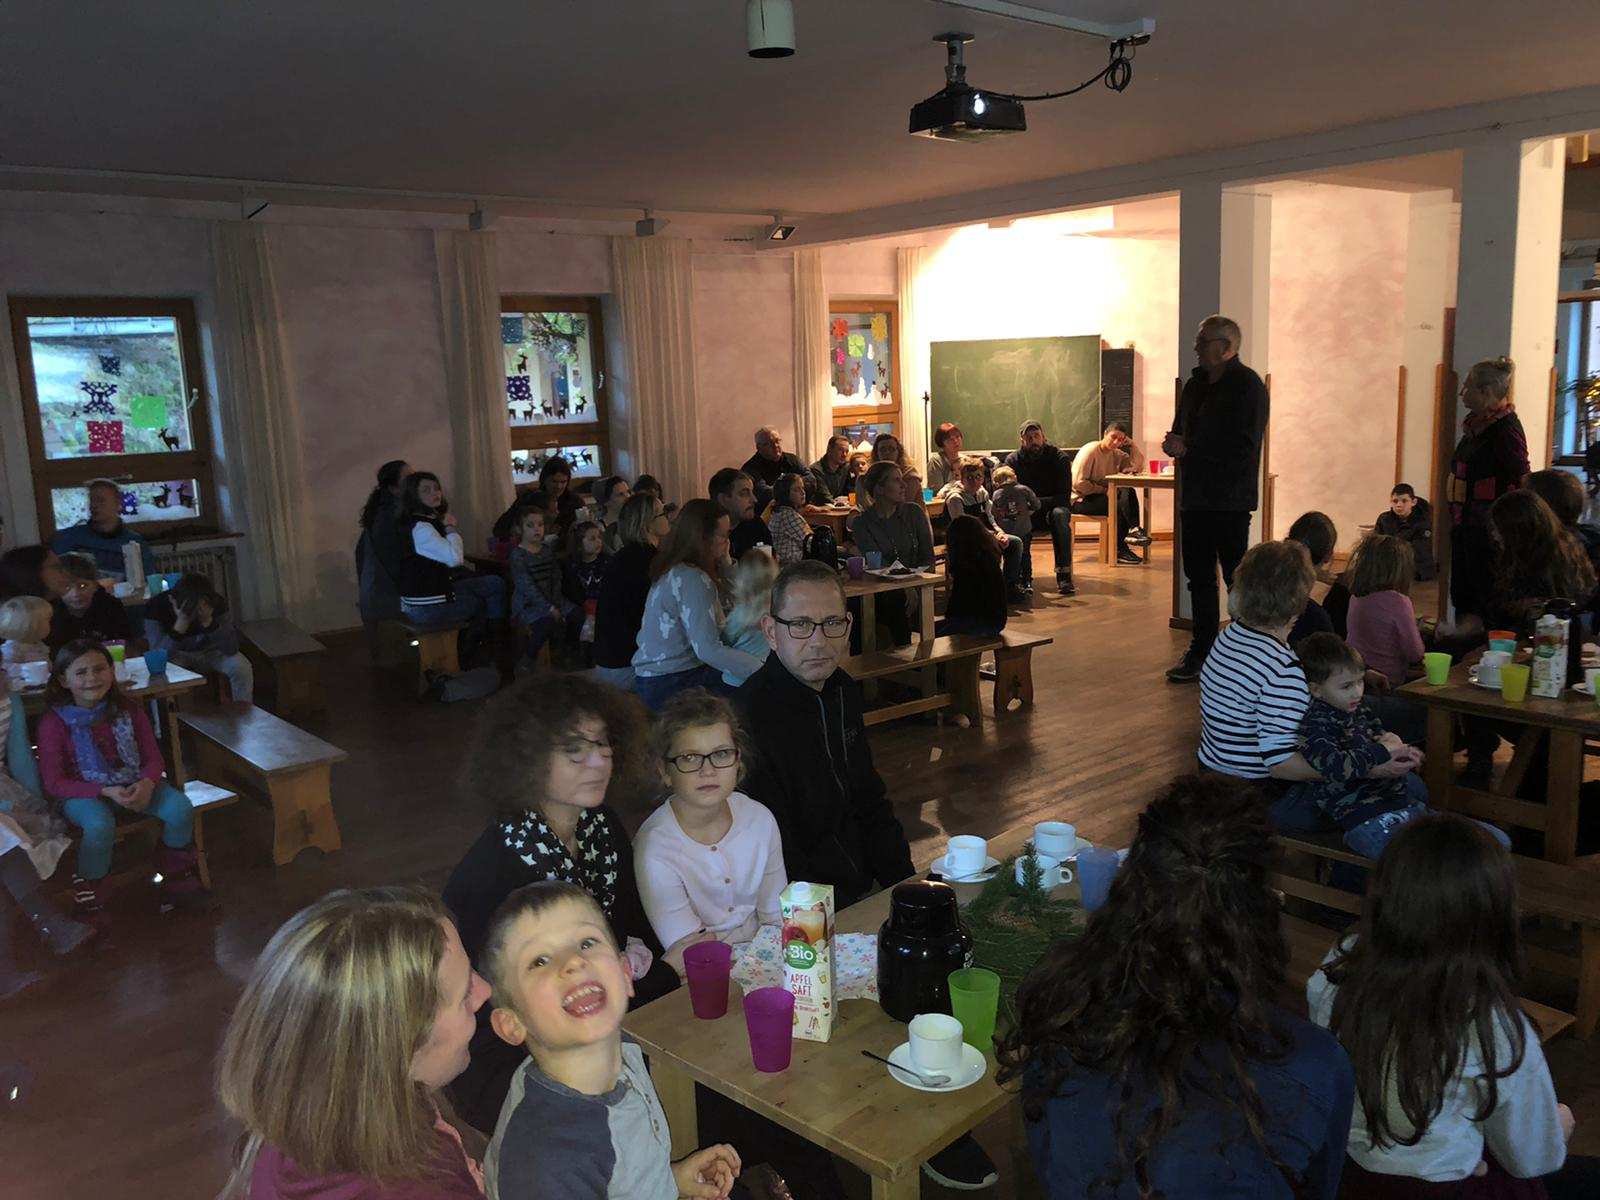 2019-12-04-Adventssingen-03